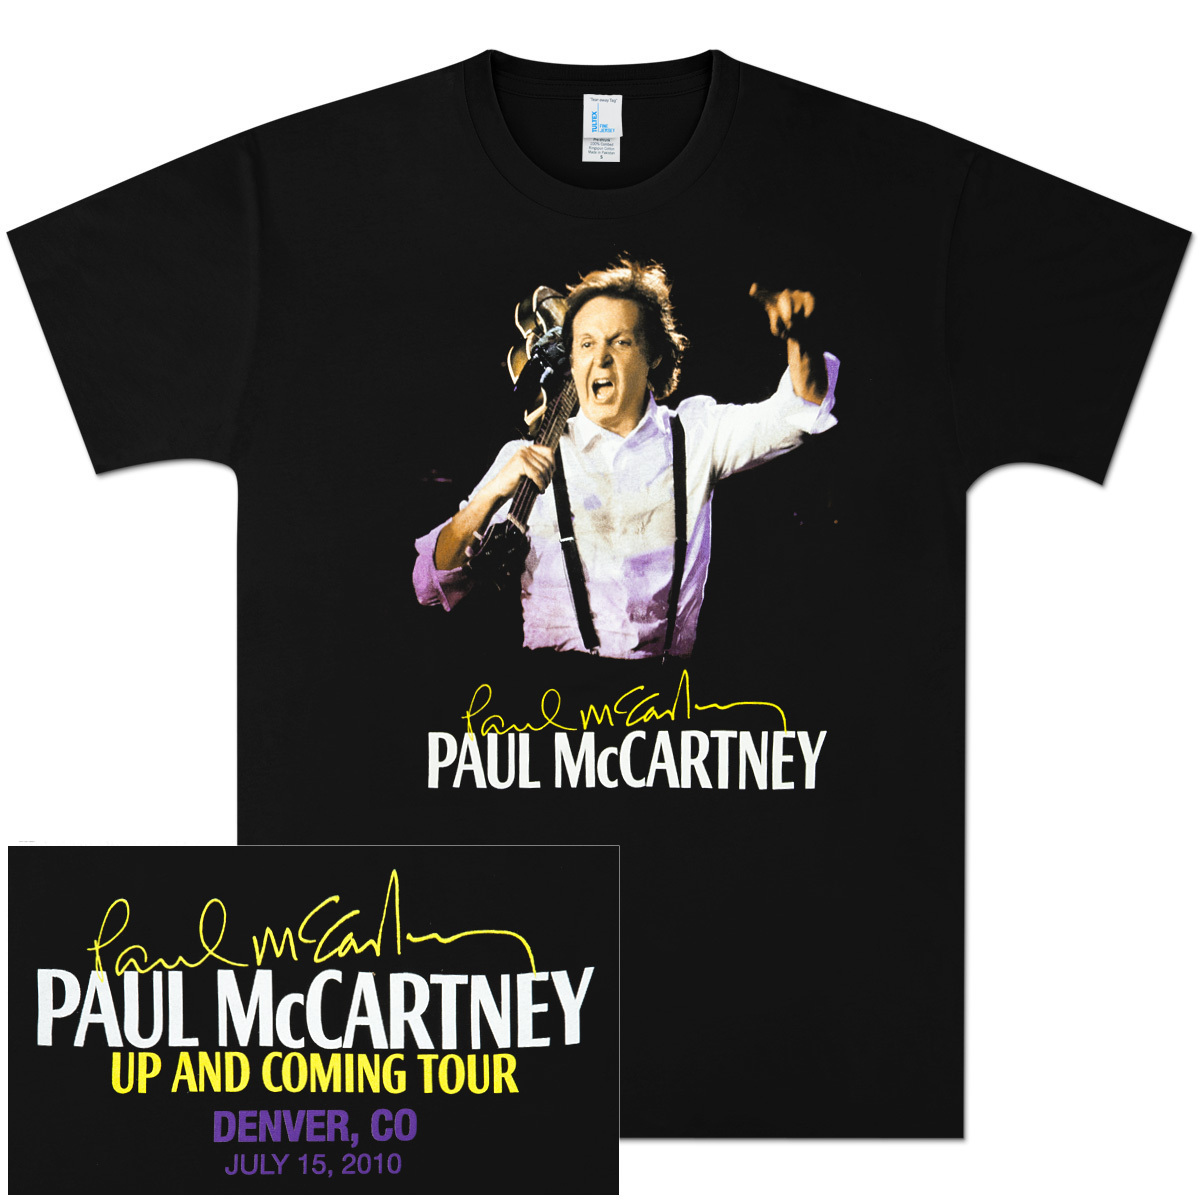 Paul McCartney Up and Coming Event T-Shirt - Denver